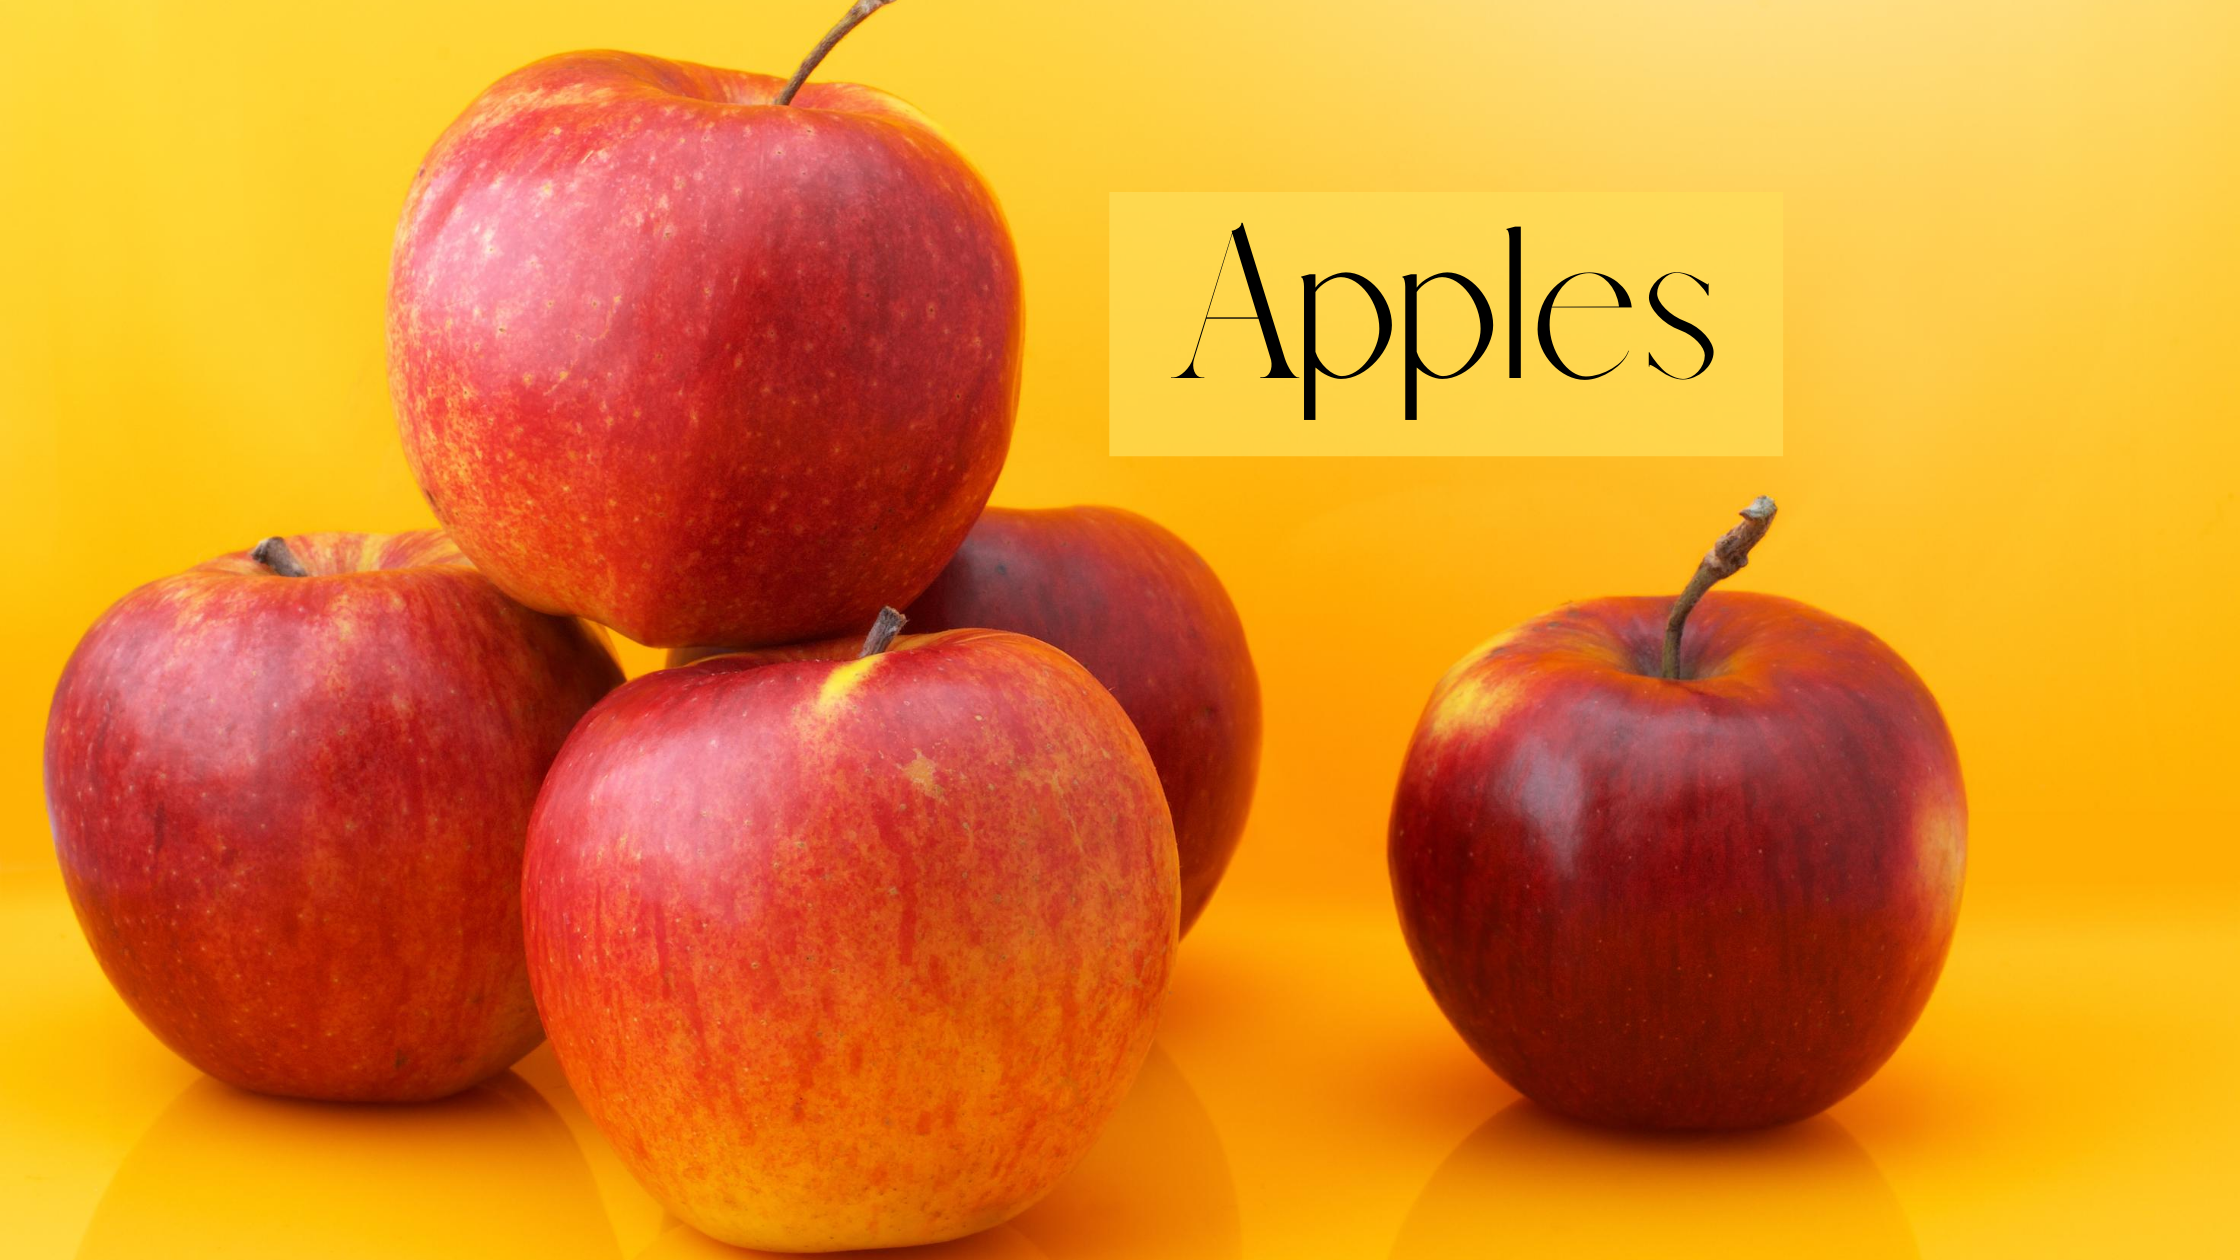 Five Healthy and Unhealthy Food Ingredients to Eat: Apples